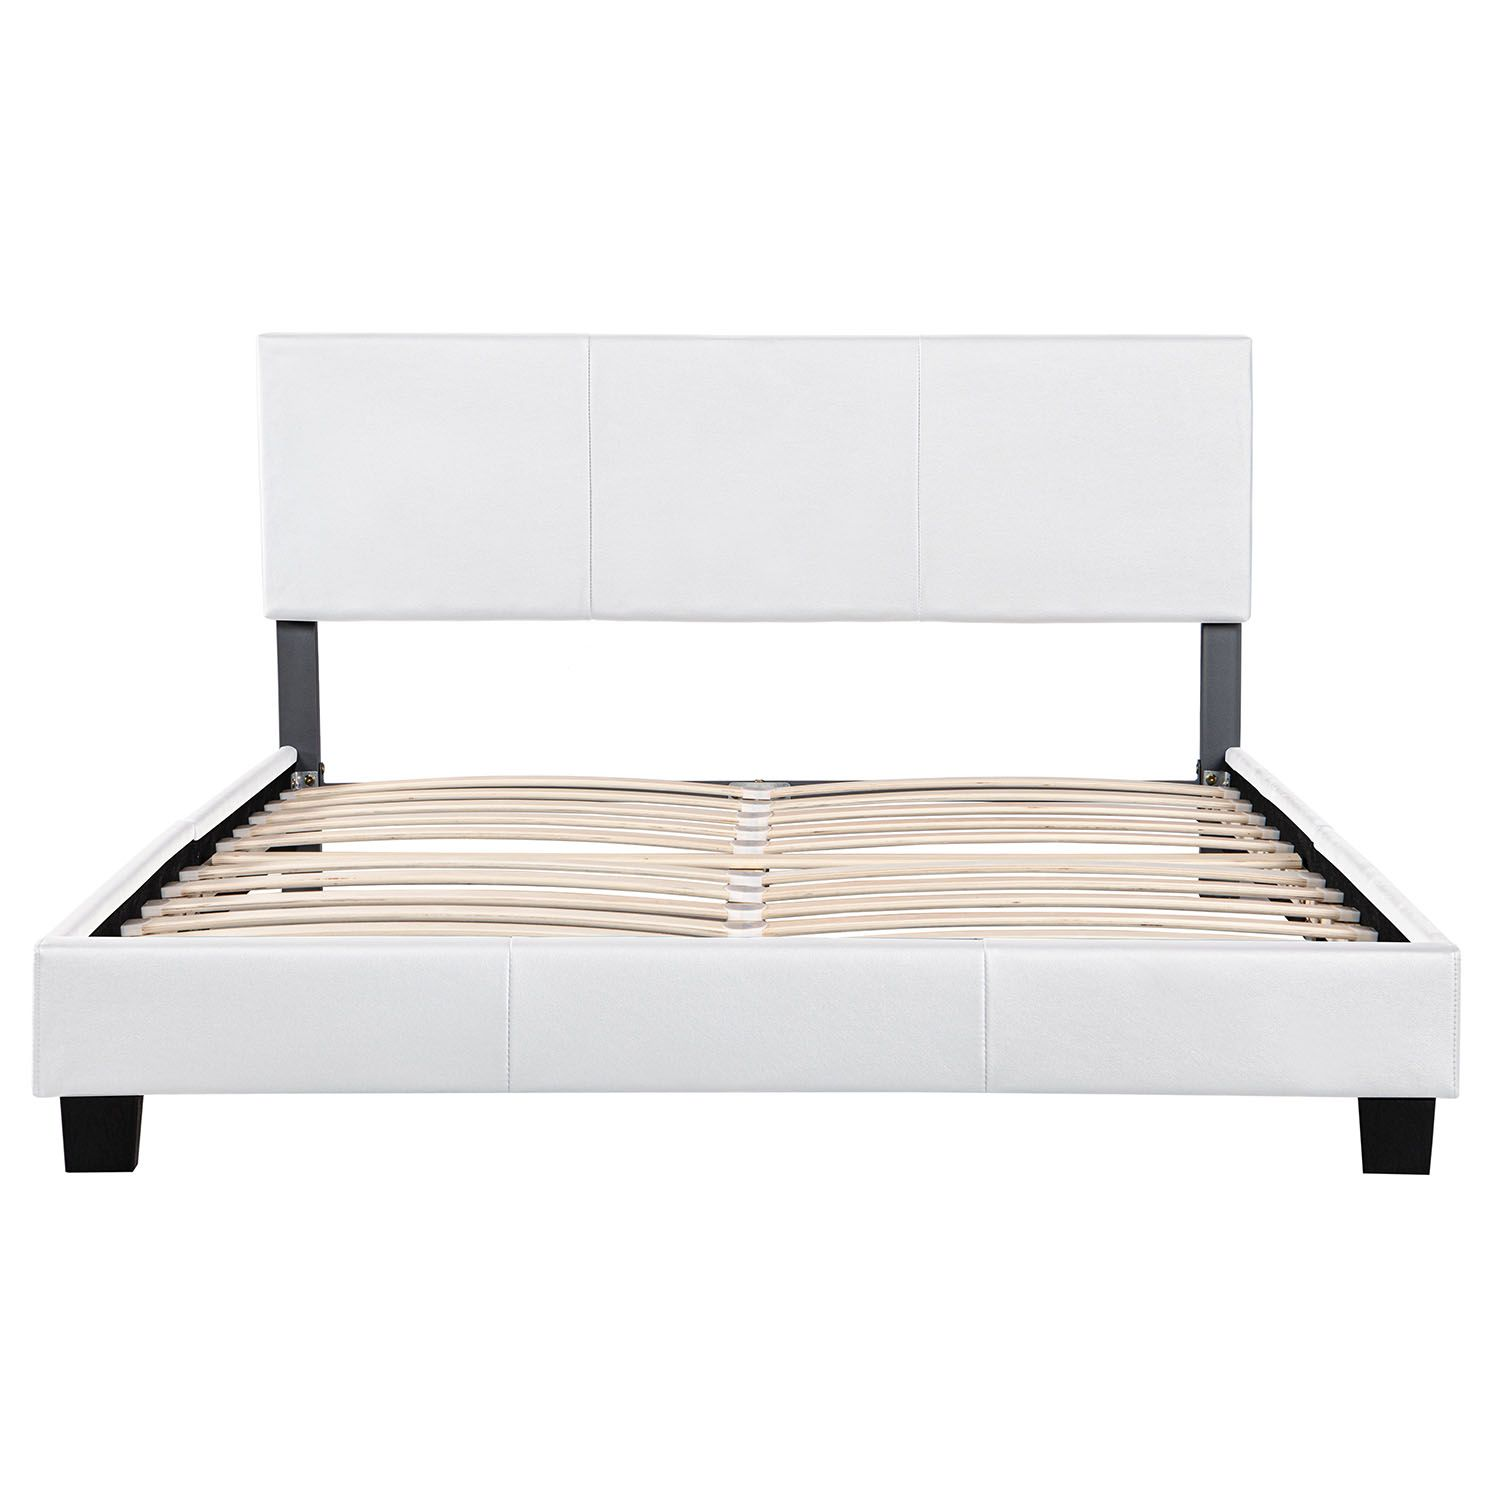 polsterbett doppelbett design bettgestell bettrahmen mit. Black Bedroom Furniture Sets. Home Design Ideas